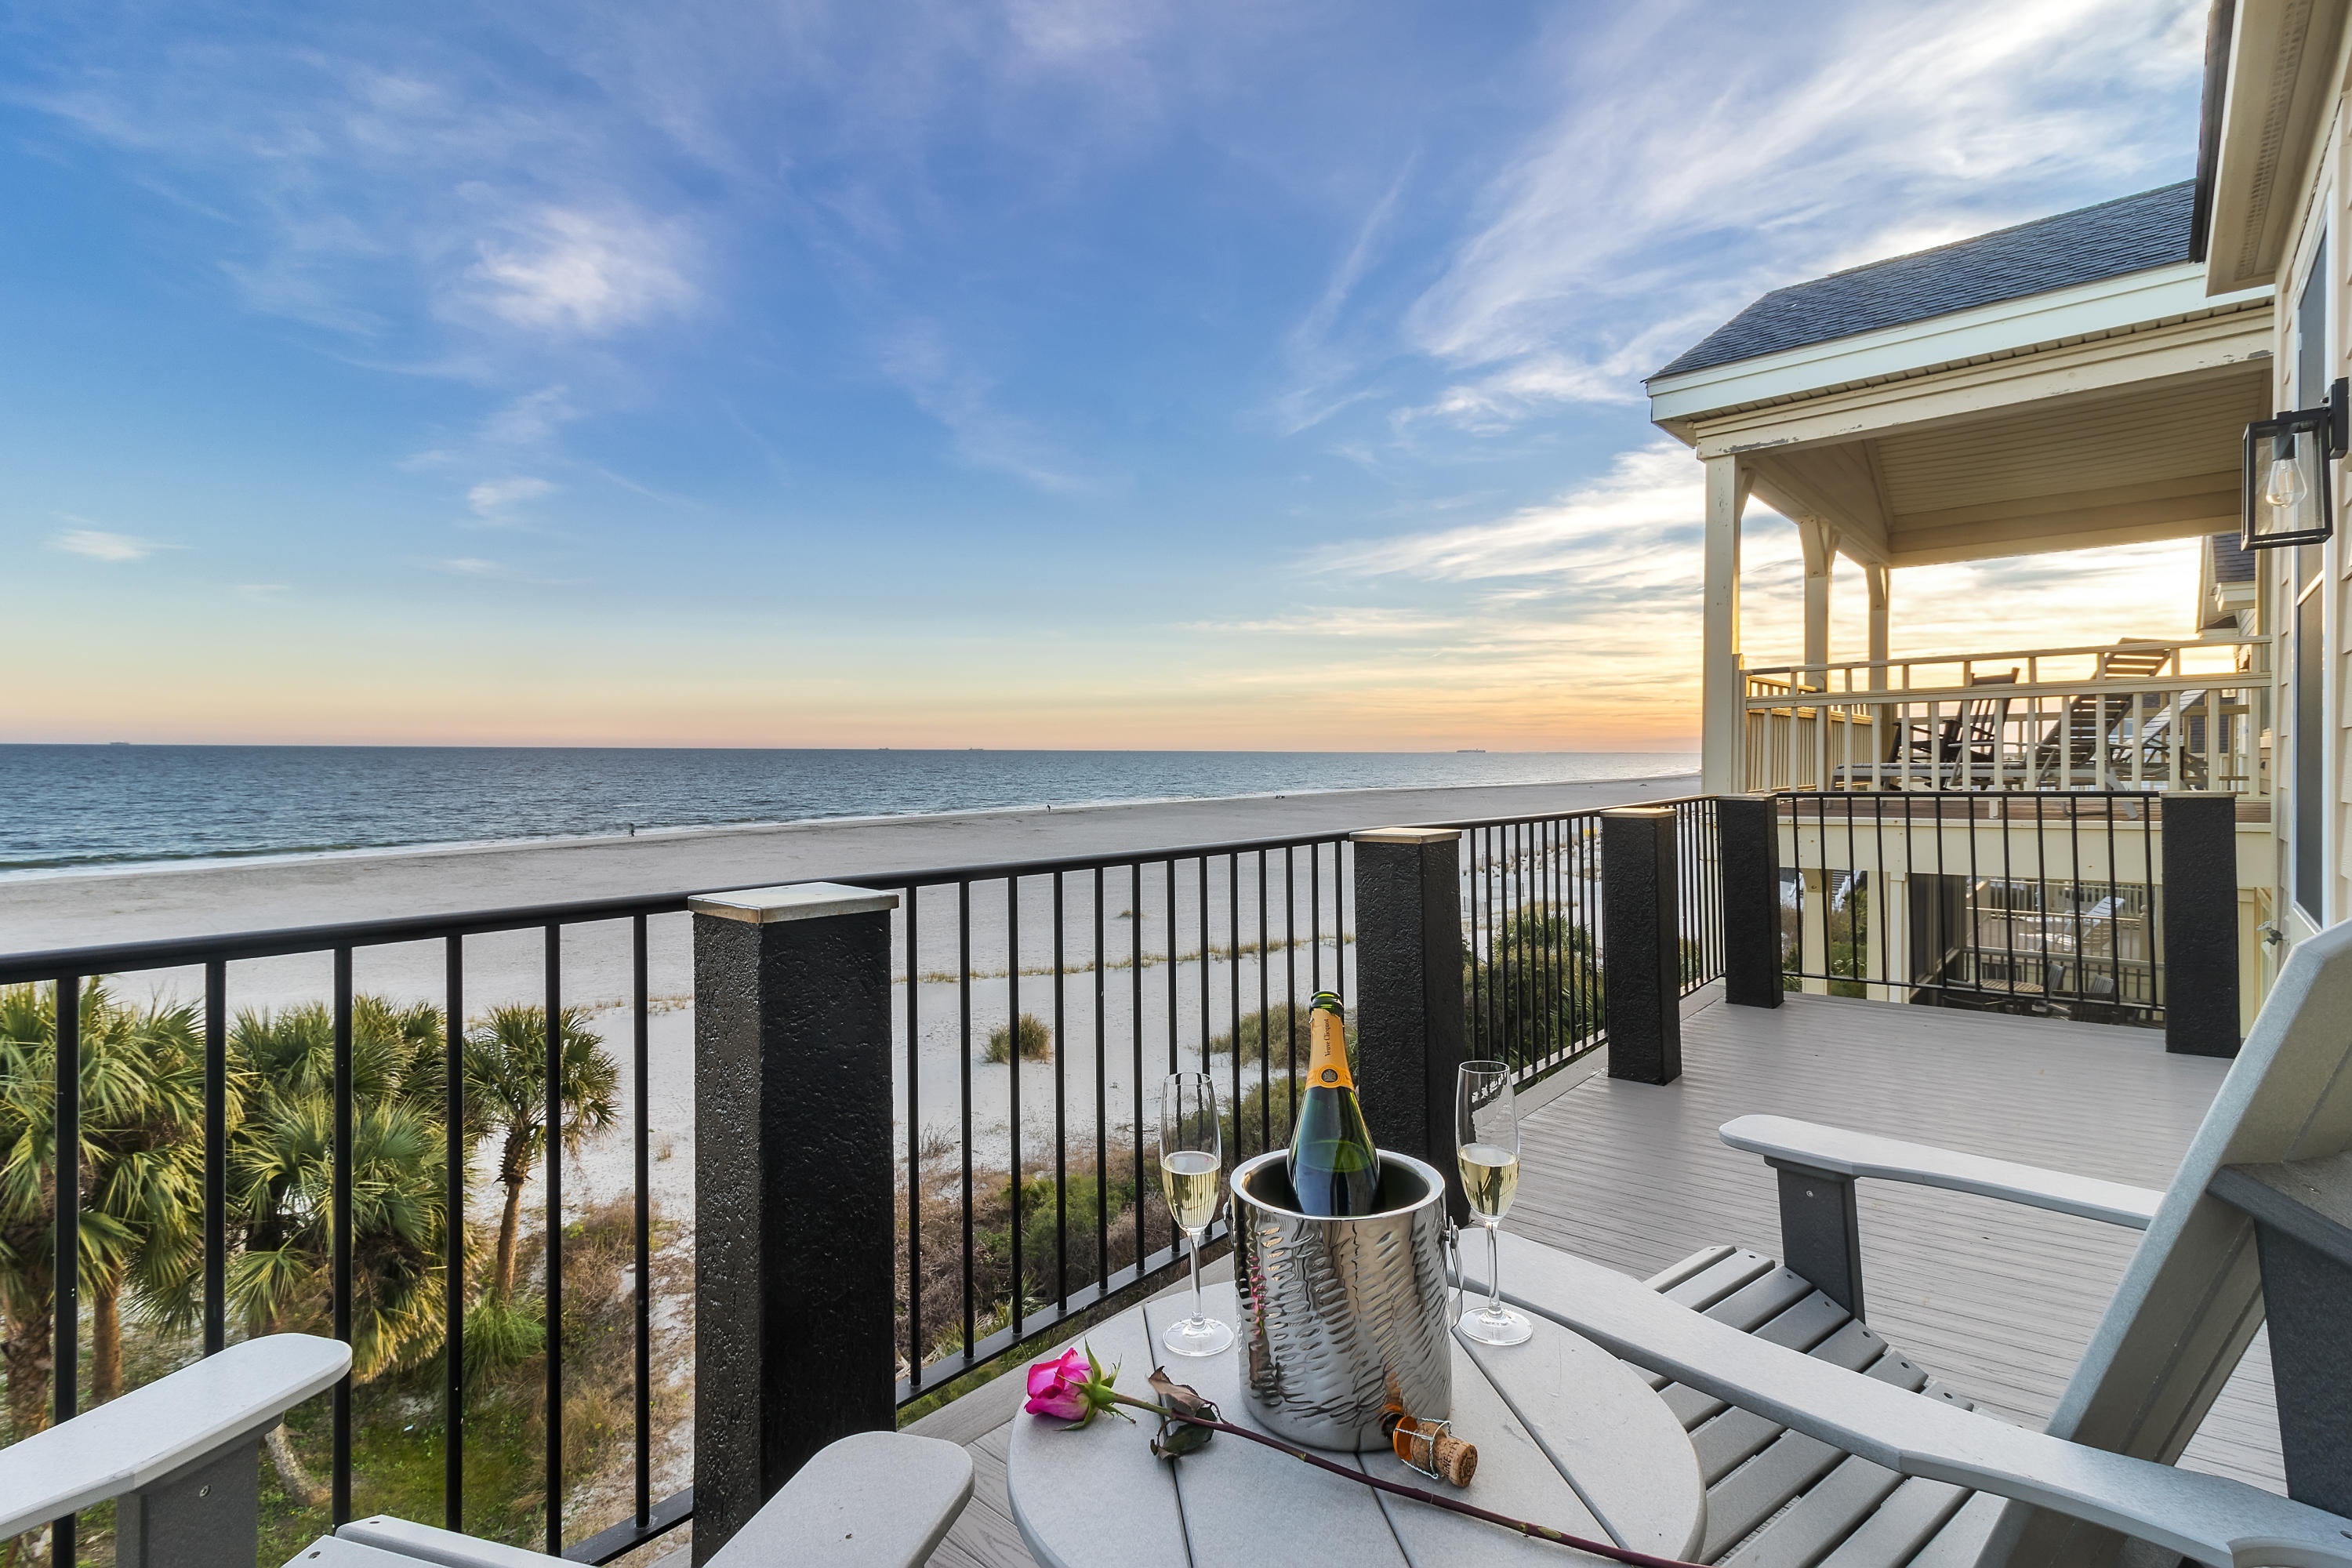 OCEANFRONT!, OCEANFRONT! OCEANFRONT! TURN KEY, END UNIT HOME with Rental Revenue Opportunity. This is the largest oceanfront home in Grand Pavilion located in the heart of Wild Dunes.There is an abundance of outdoor space to enjoy breathtaking views from every level.  As you step through the front door you are greeted with stunning views of the Atlantic Ocean. There is plenty of indoor open space to entertain and great memories with family and friends in the years to come or use as a vacation home and enjoy the rental income. Exterior recently painted, new decking, rails, roof, and new windows.  New interior upgrades in the kitchen, stainless steel appliances, countertops, lighting, and partial new furnishing throughout the entire property.  Currently established with a well known Vacation Rental company on the island. Sold Furnished. Steps away from Grand Pavilion pools, boardwalk, shops, and Wild Dunes amenities. Seller is related to agent.